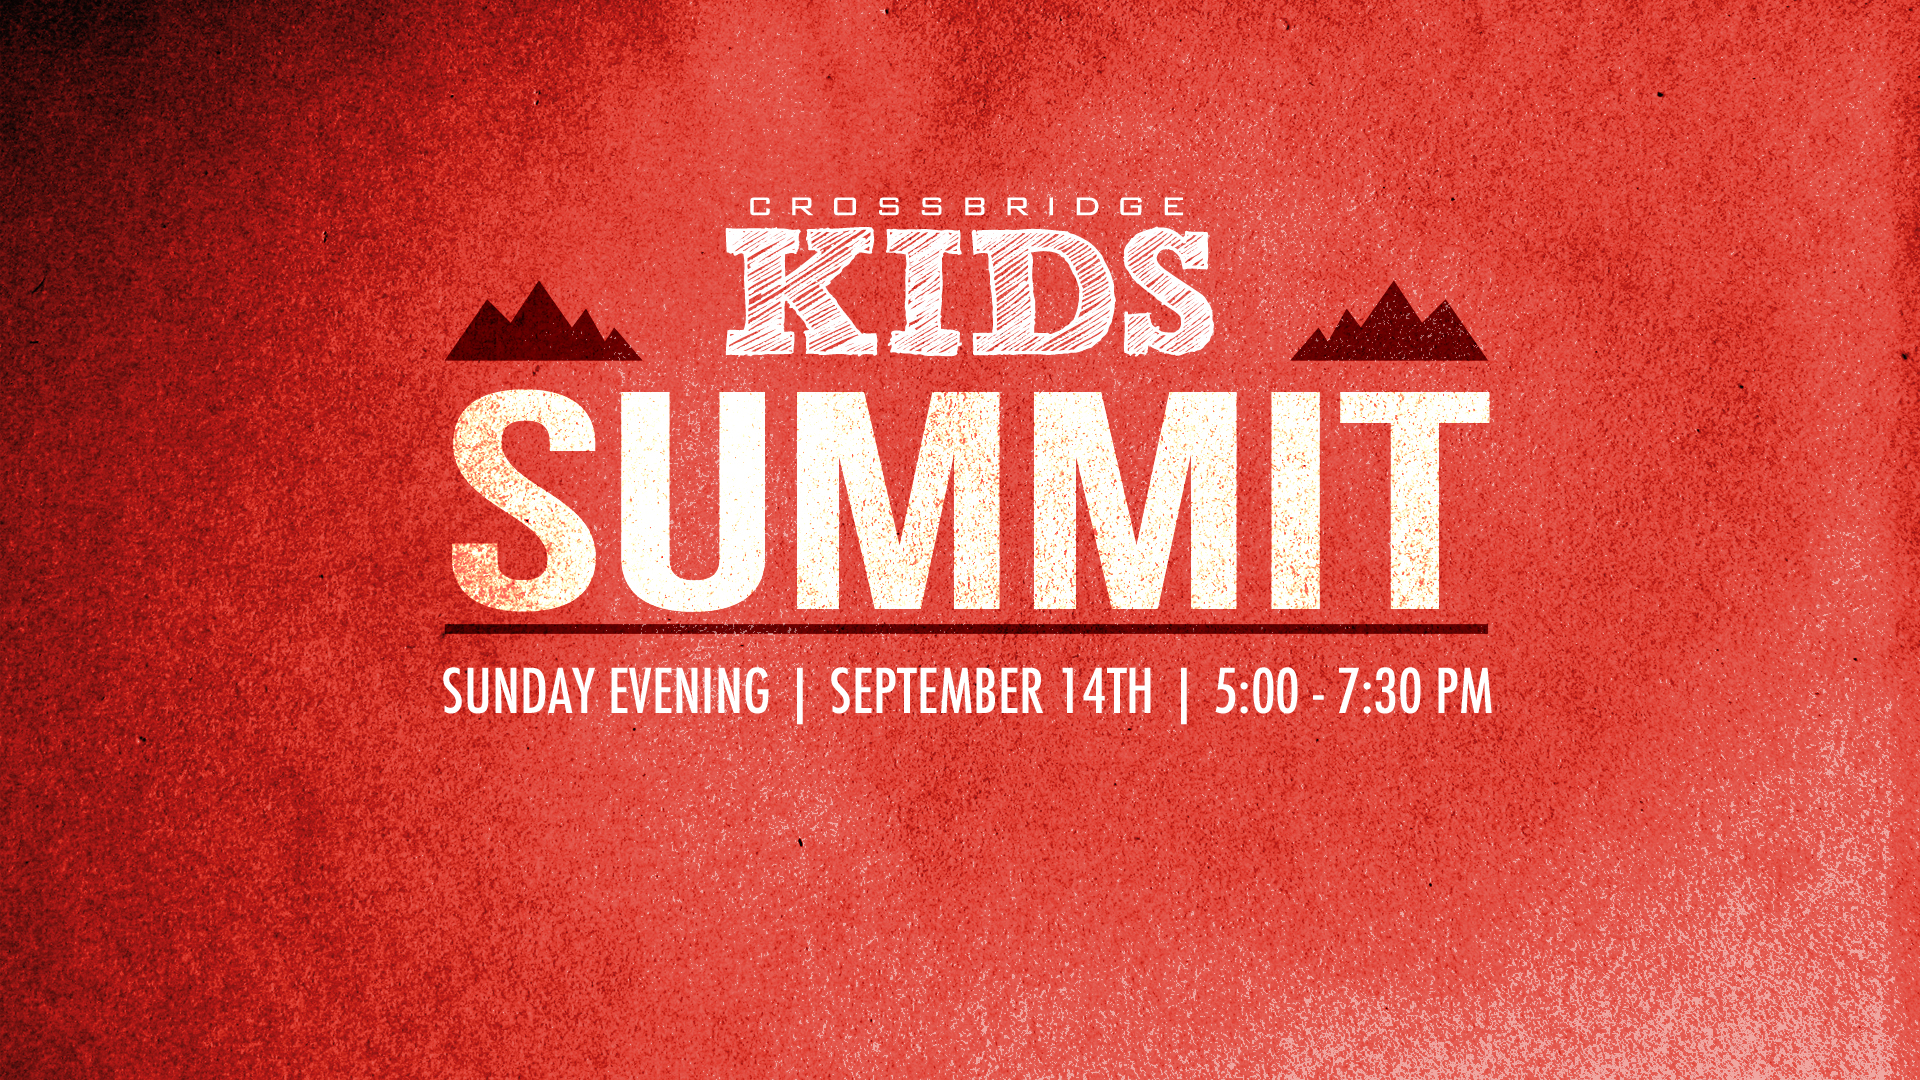 CROSSBRIDGE KIDS SUMMIT - November 8 I 4:30-6:00 PM  The annual Summit is a team meeting for all those who serve in Crossbridge Kids. This is an opportunity to hear from our new Children's Minister, Jennifer Krupa, and to get invaluable training on how to lead kids to Jesus in our Sunday morning environments. Meet in the main Auditorium - you don't want to miss it!